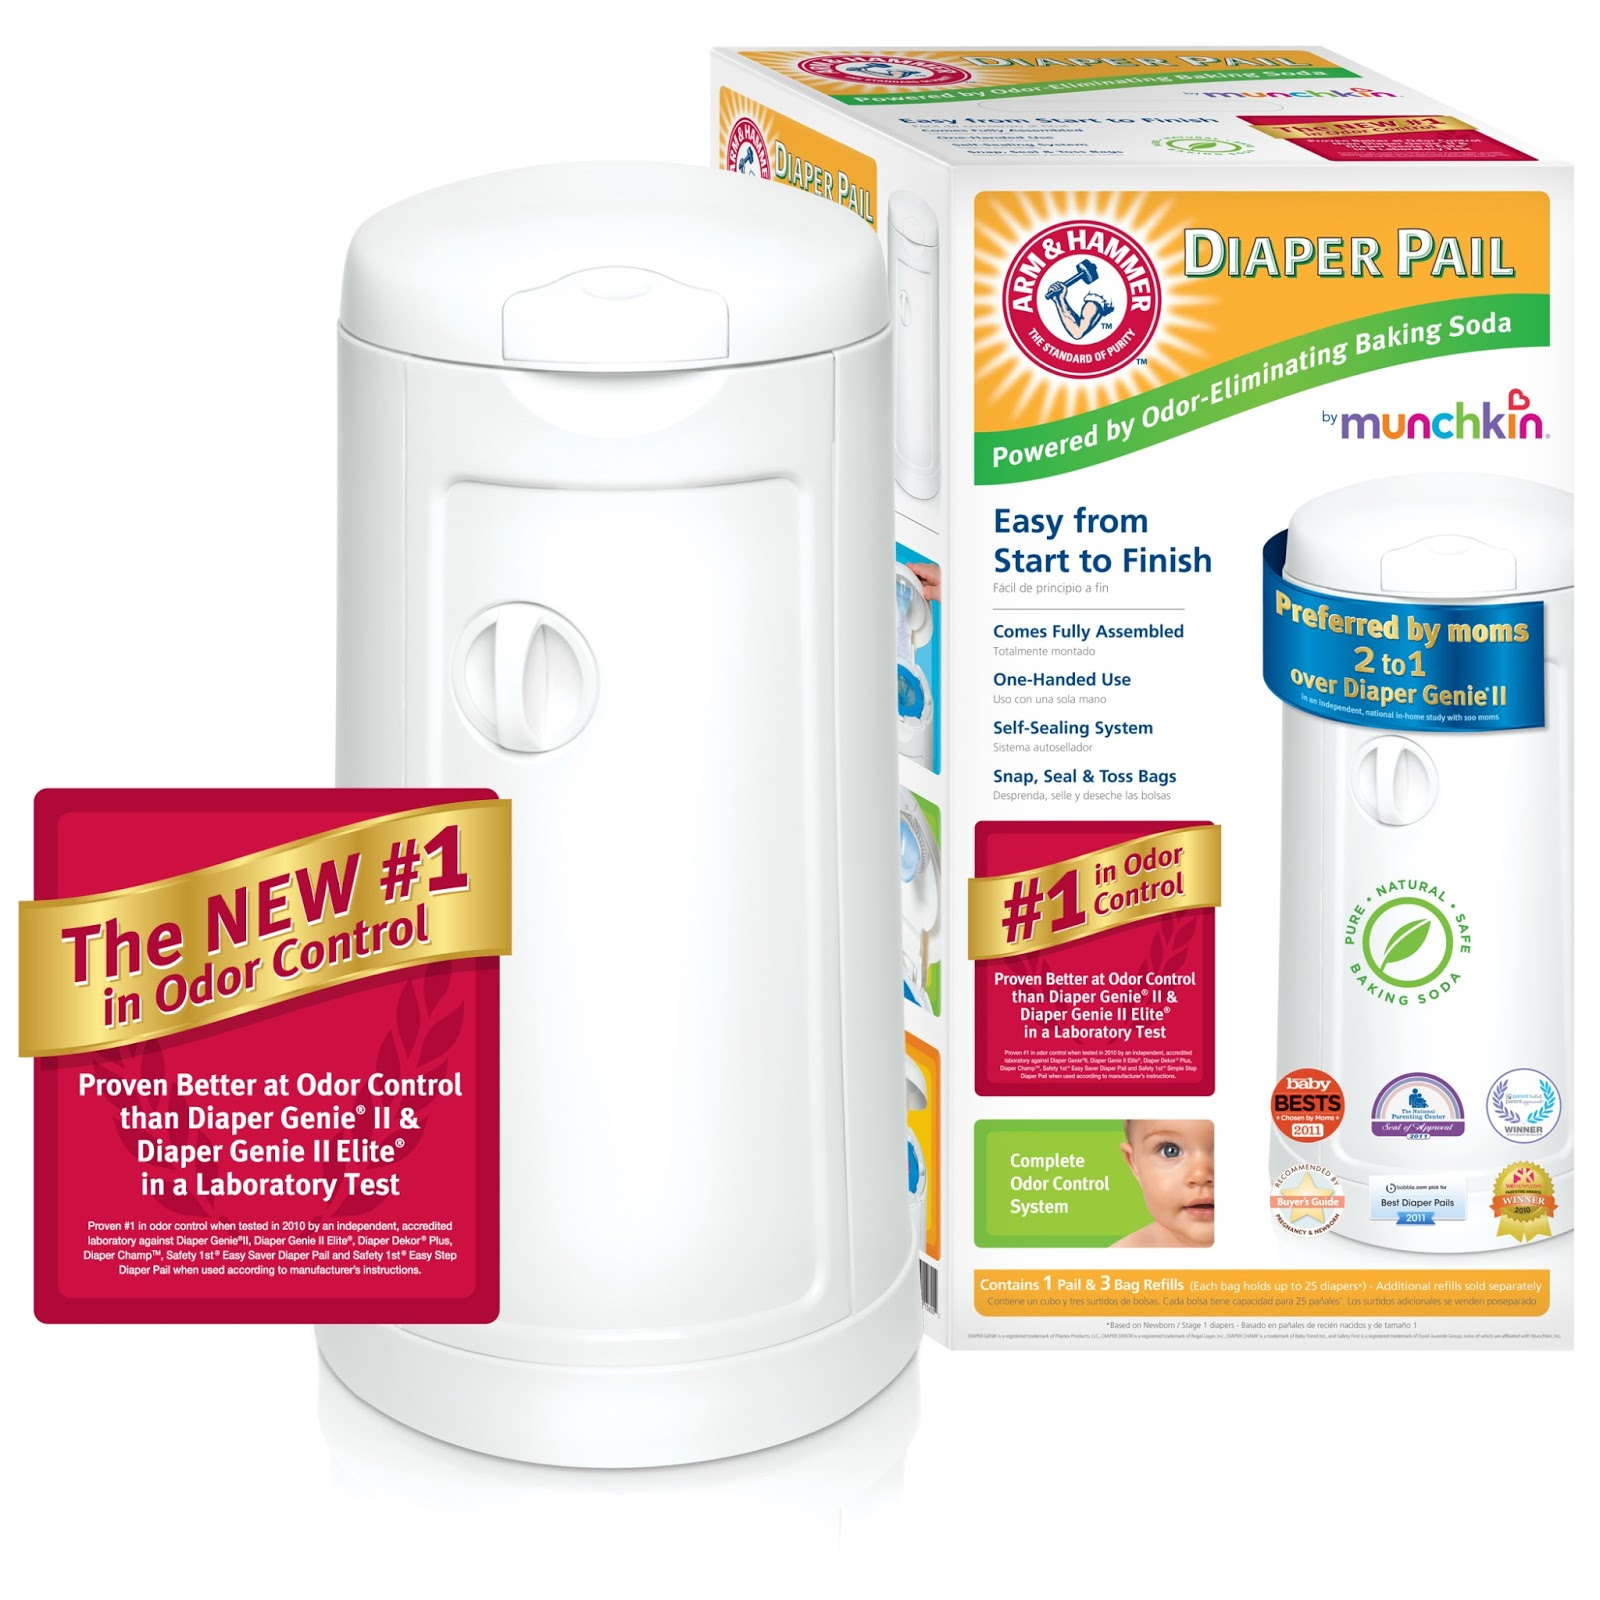 Mommy Katie: #Giveaway Arm & Hammer Diaper Pail by Munchkin CLOSED!!